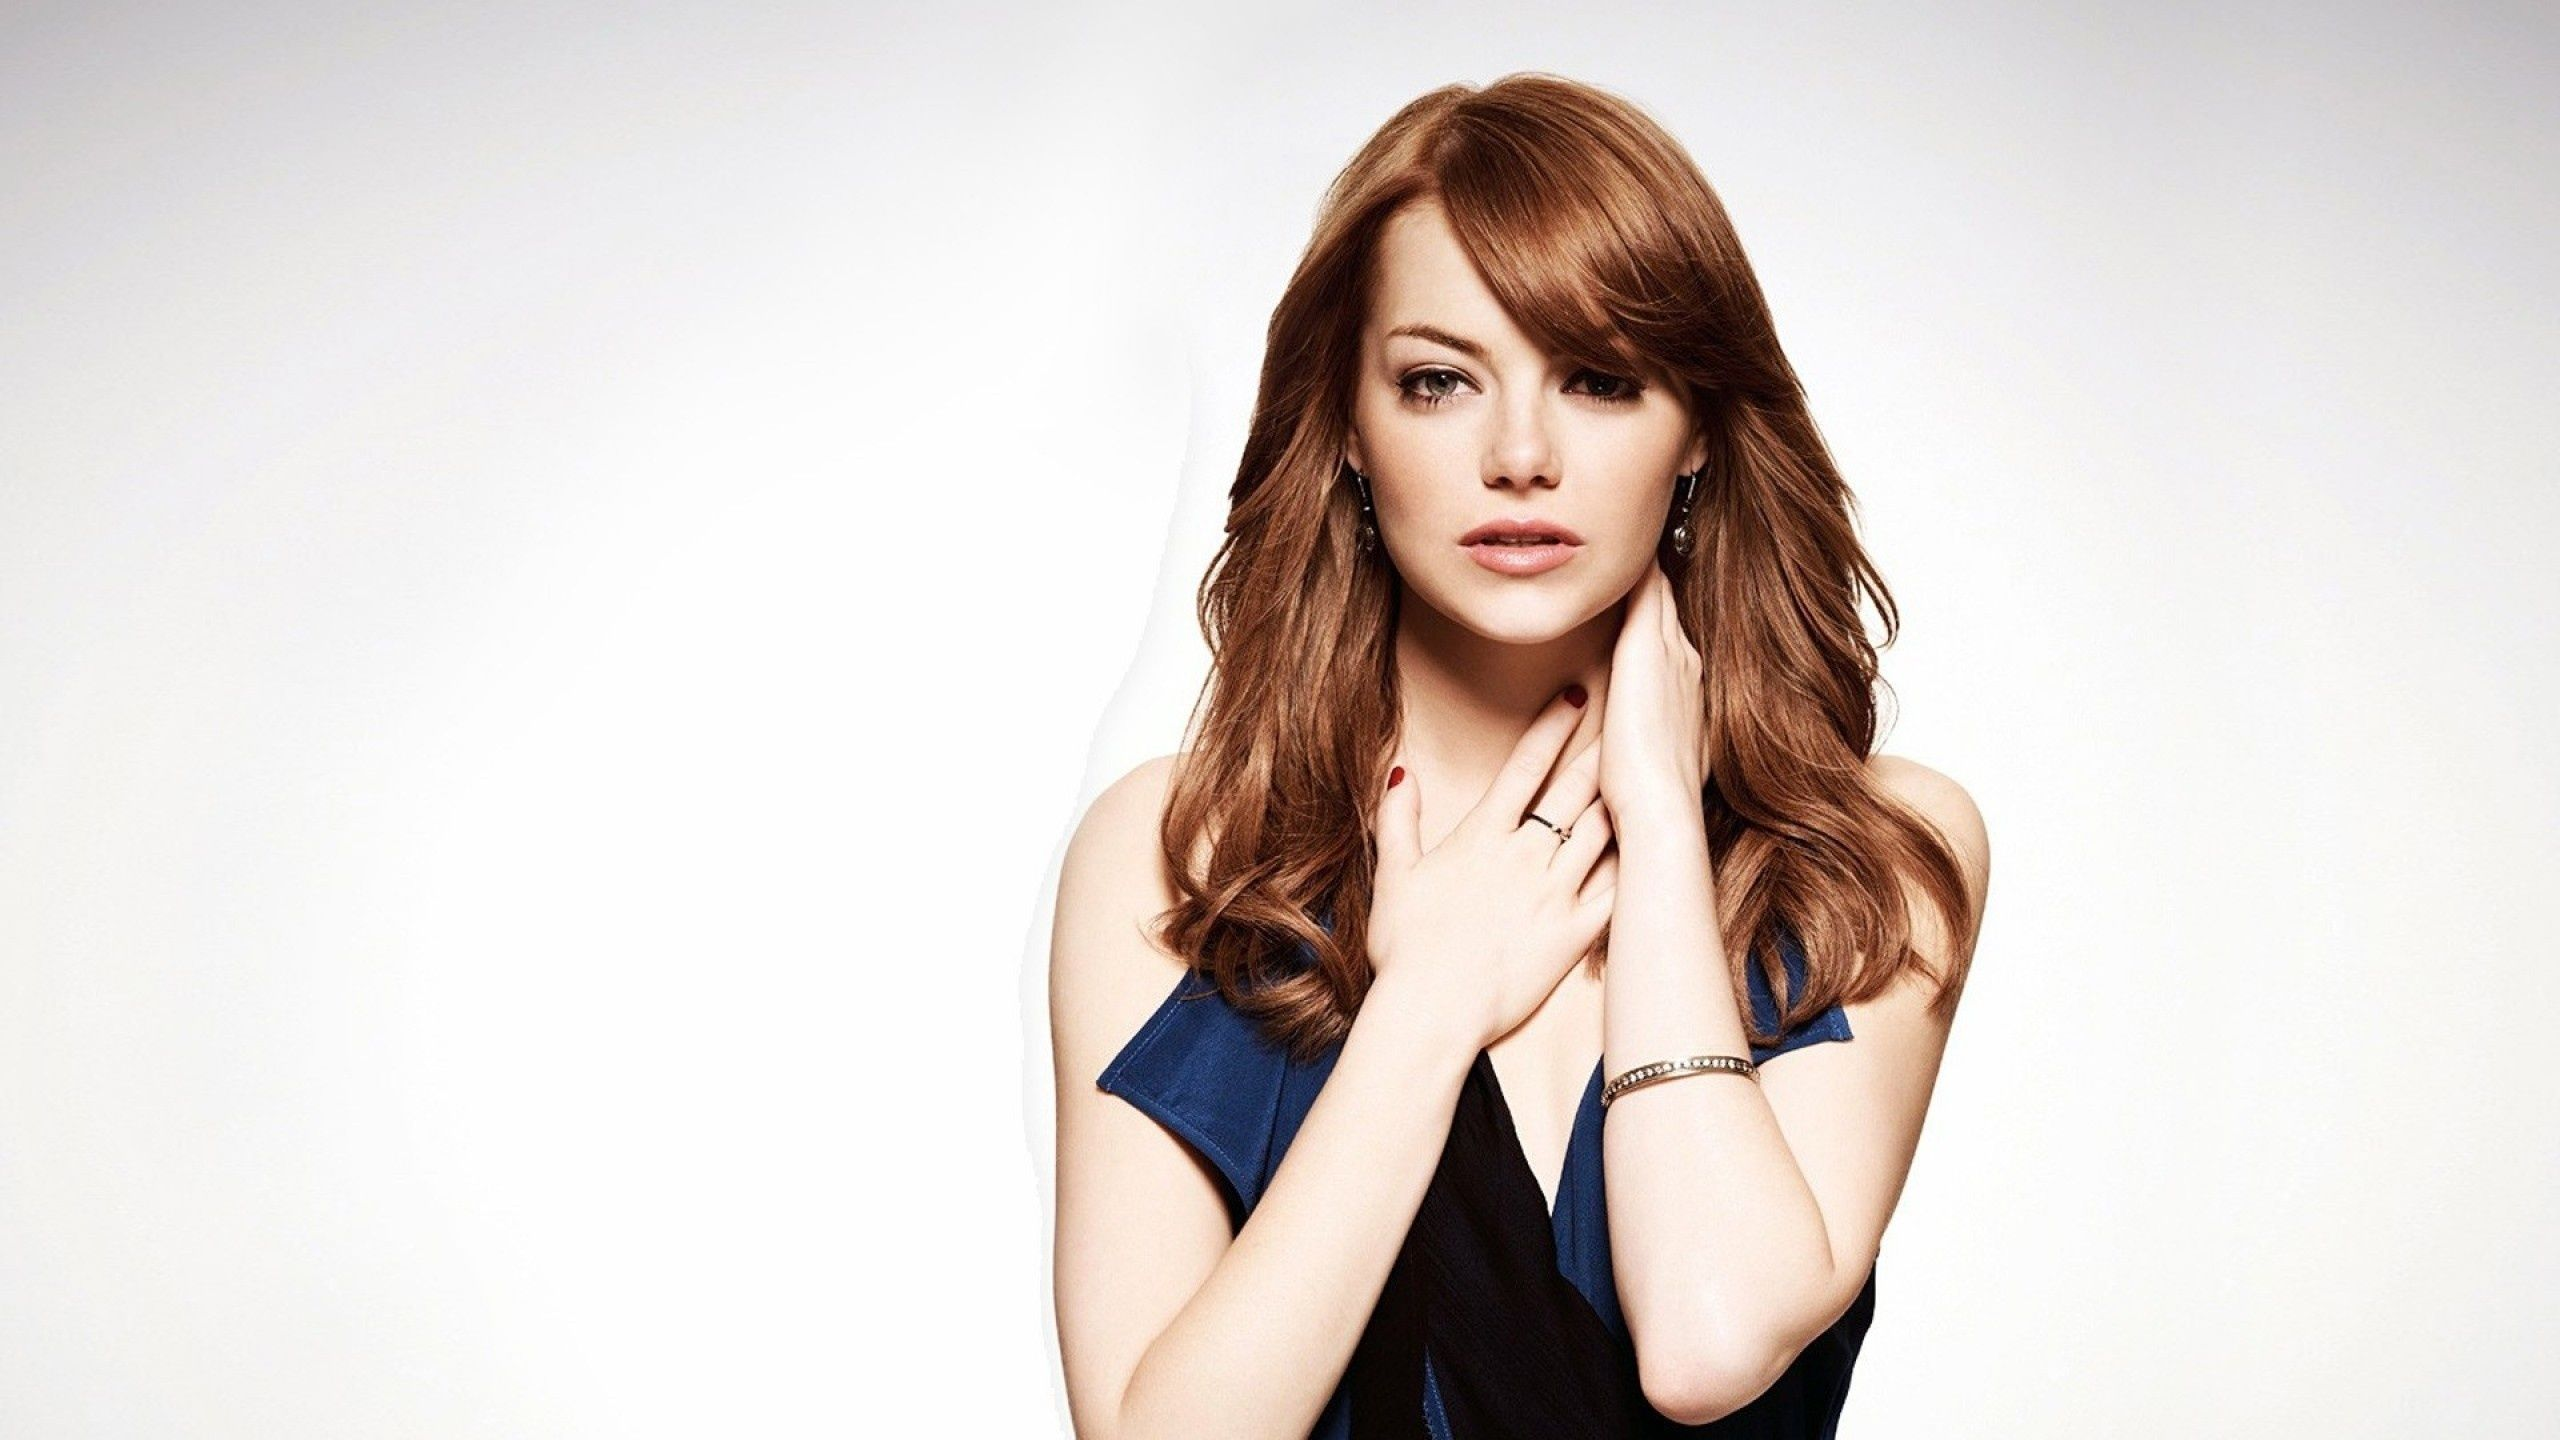 Emma Stone Hd Wallpapers Free Download Latest Emma Stone Hd